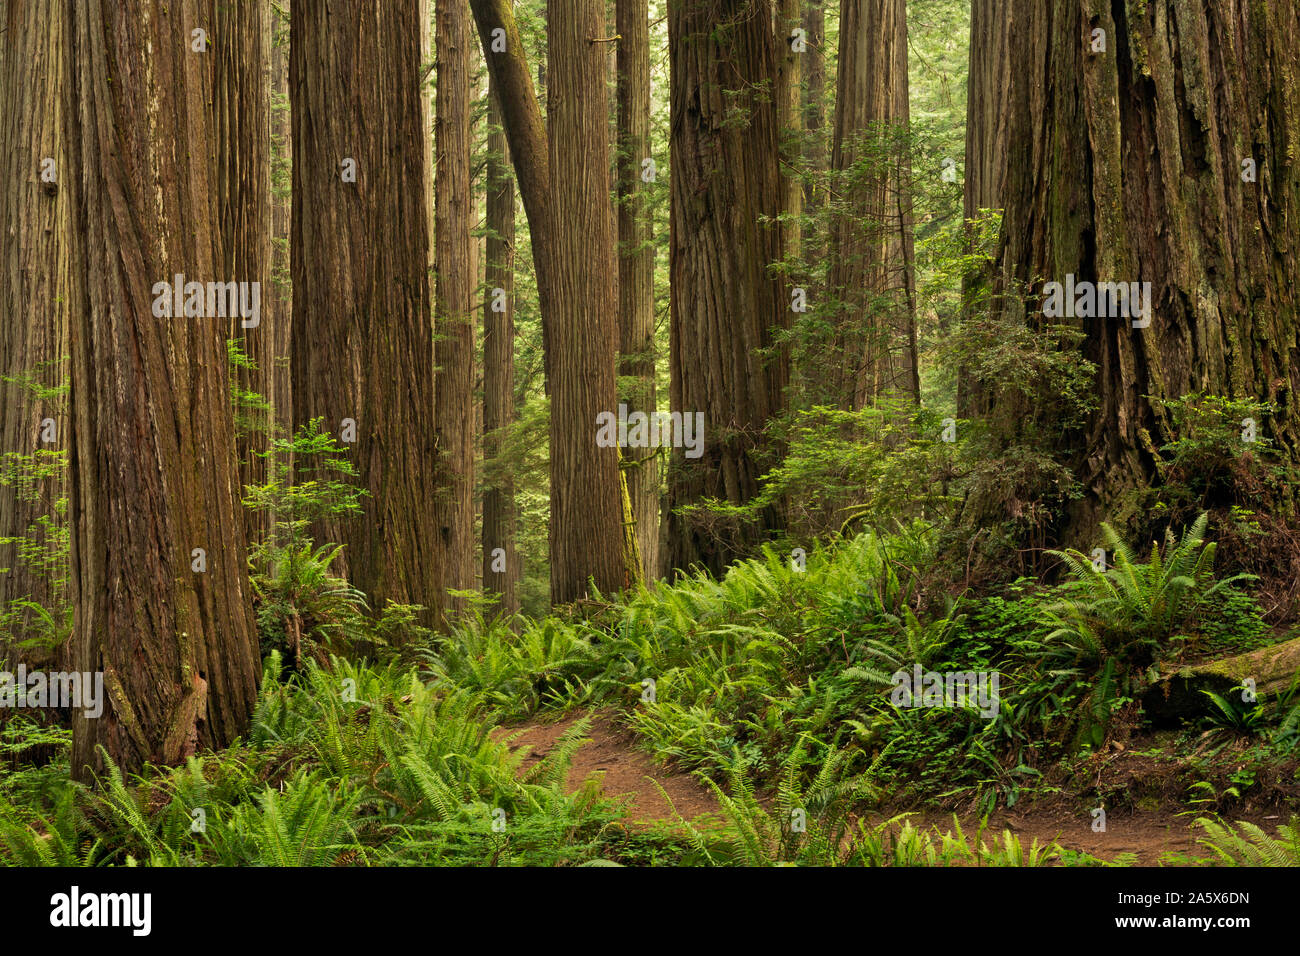 CA03763-00...CALIFORNIA - The Boy Scout Tree Trail winding through a redwood forest in Jedediah Smith Redwoods State Park; part of Redwoods National a Stock Photo